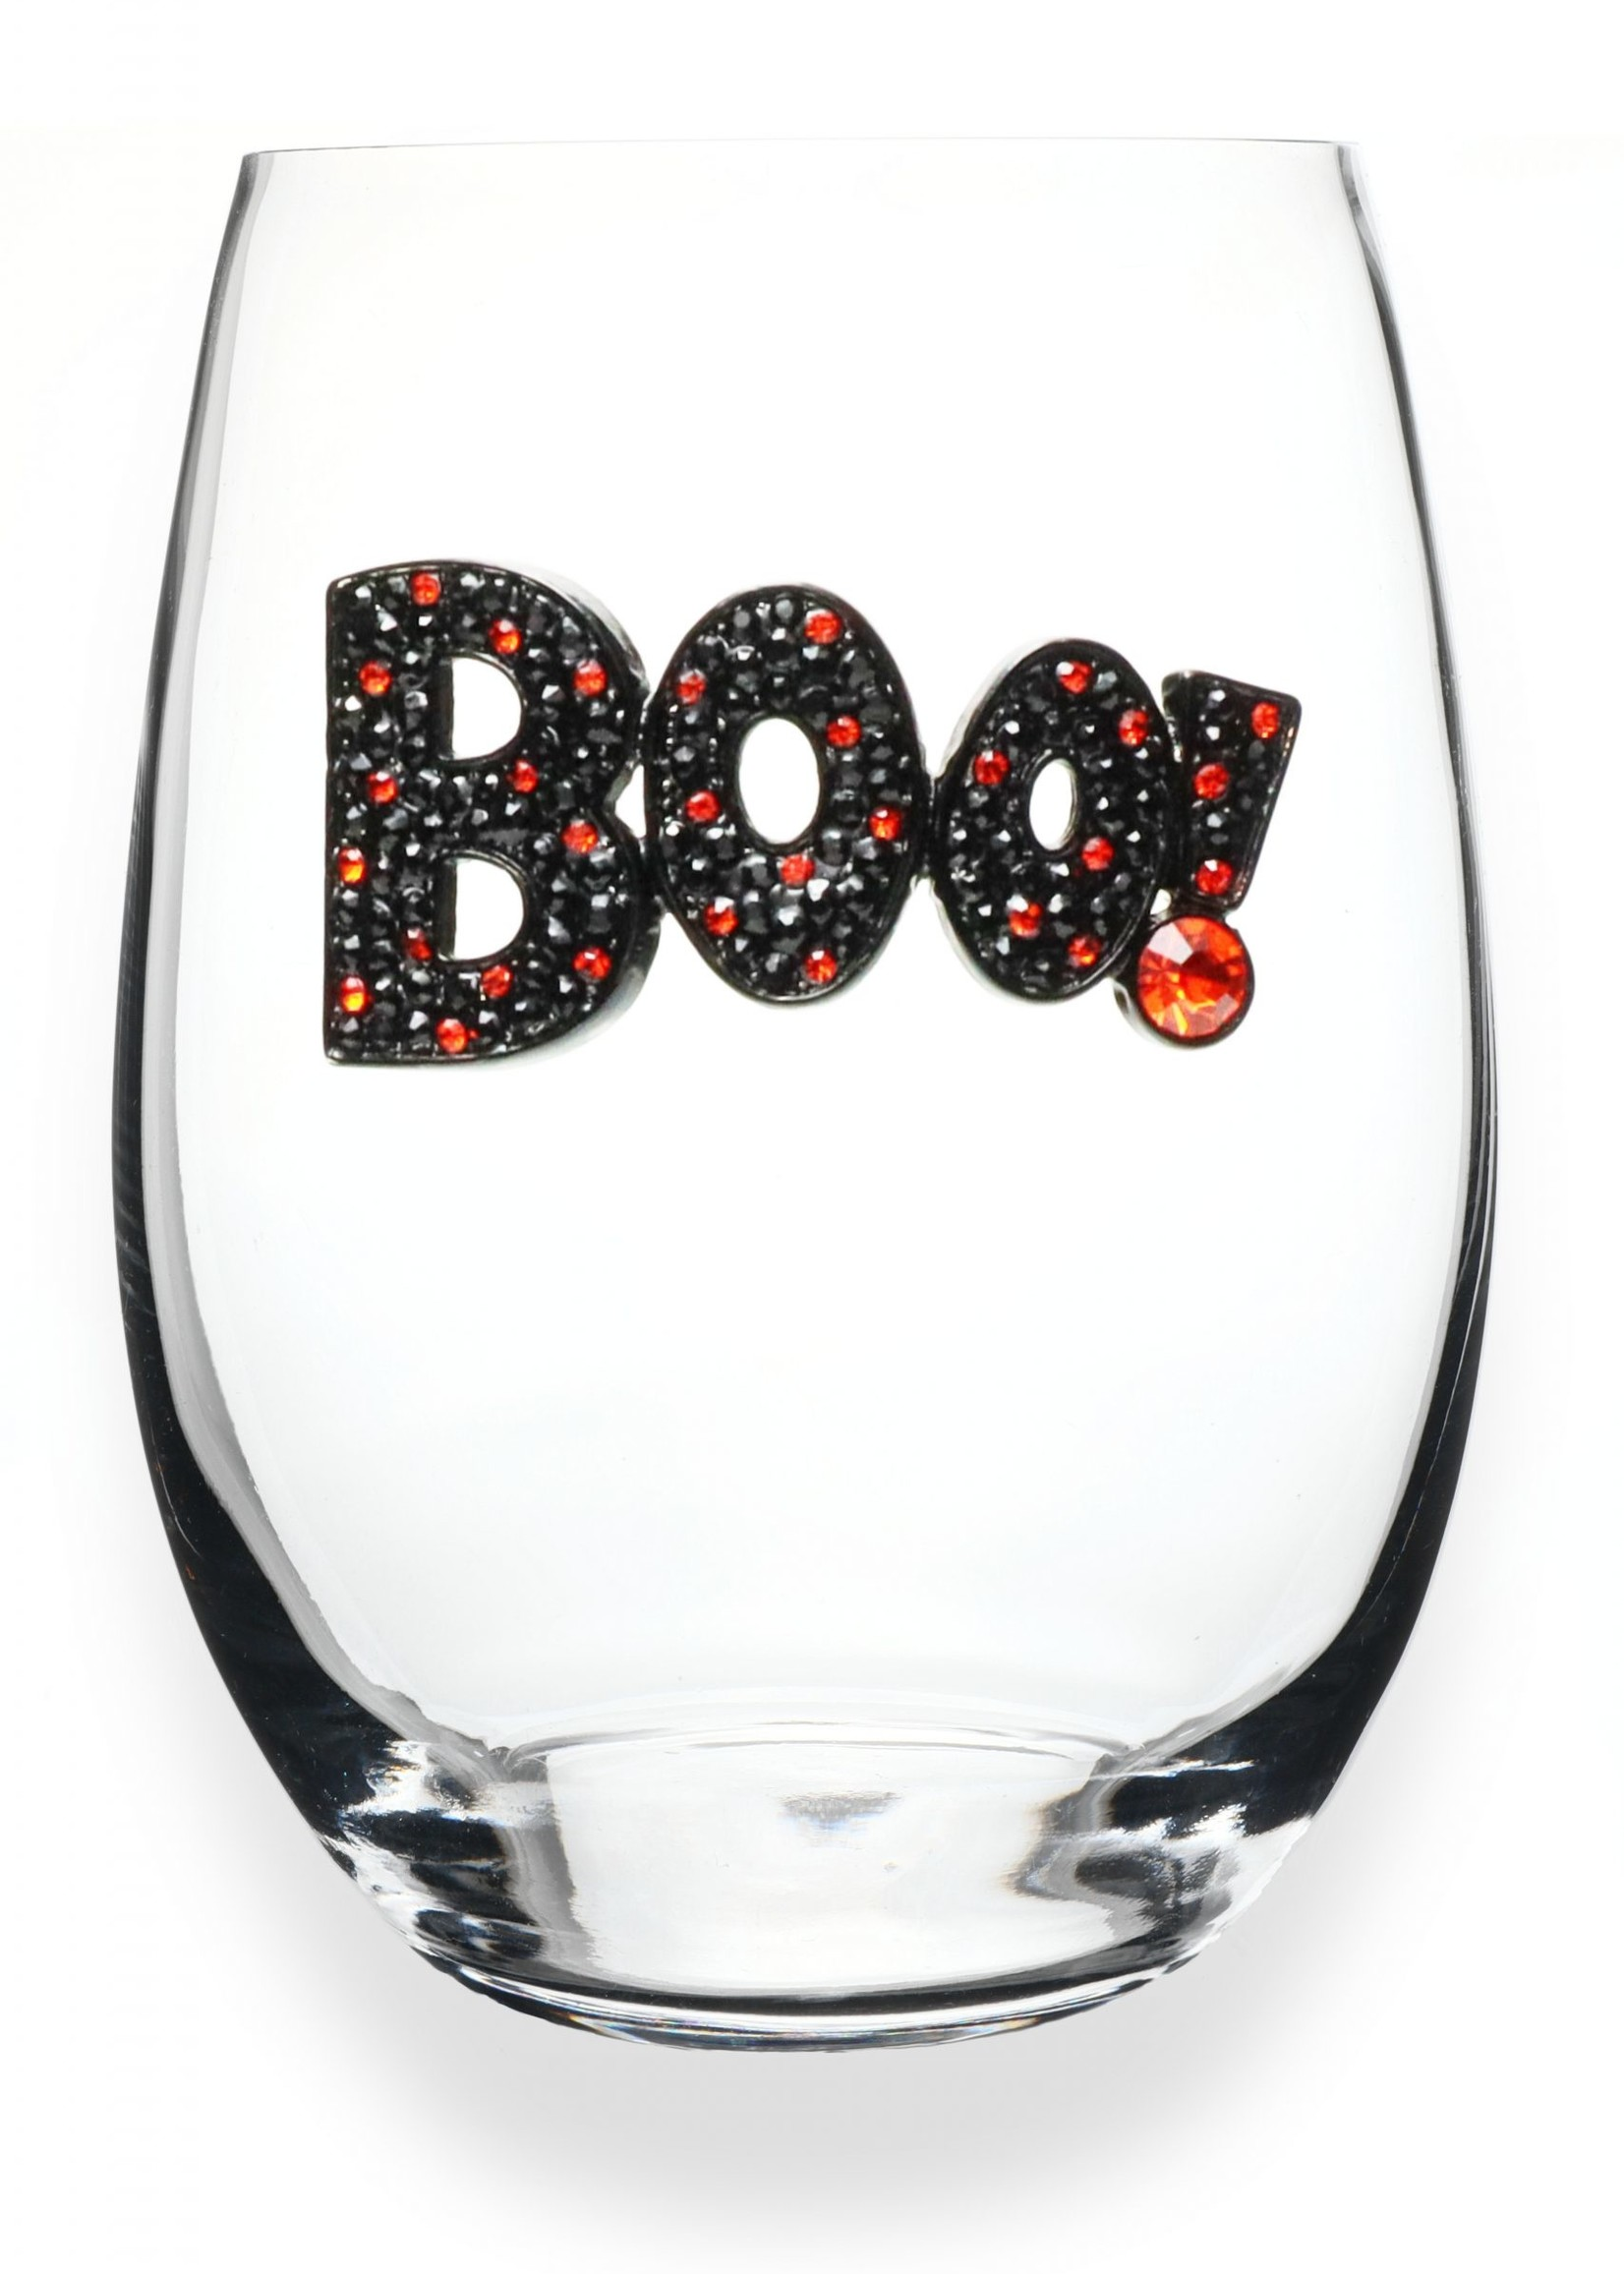 The Queen's Jewels Boo Stemless Wine Glass